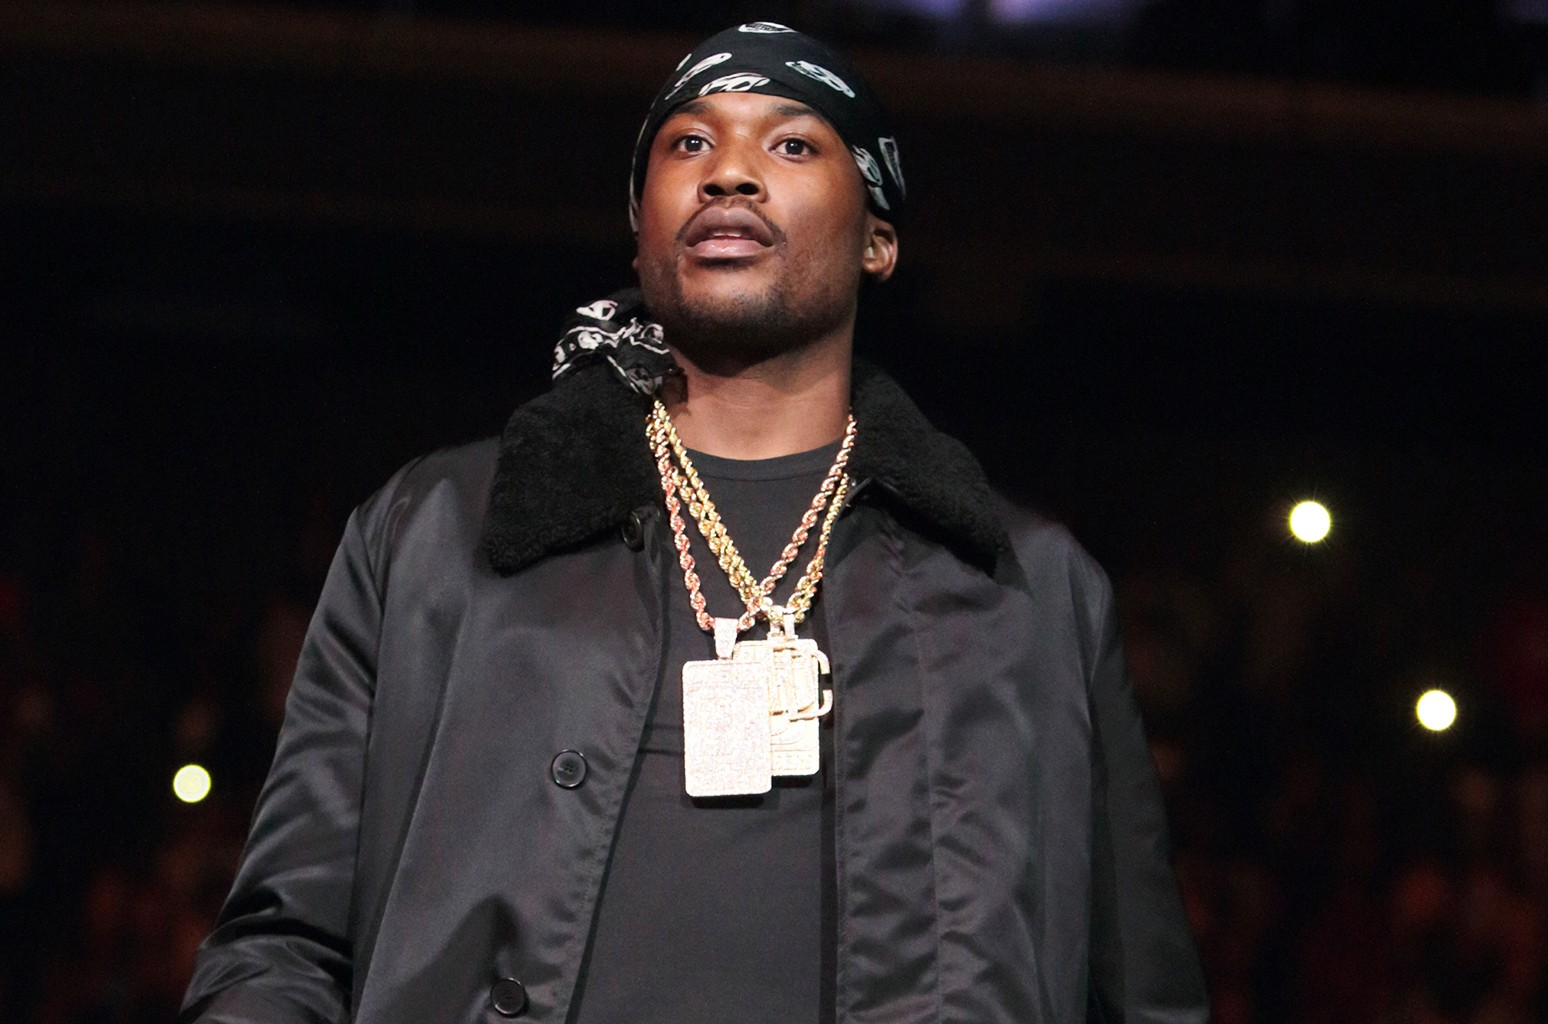 Meek Mill performs in concert during the Power 99 Powerhouse 2016 at the Wells Fargo Center on Oct. 28, 2016 in Philadelphia.